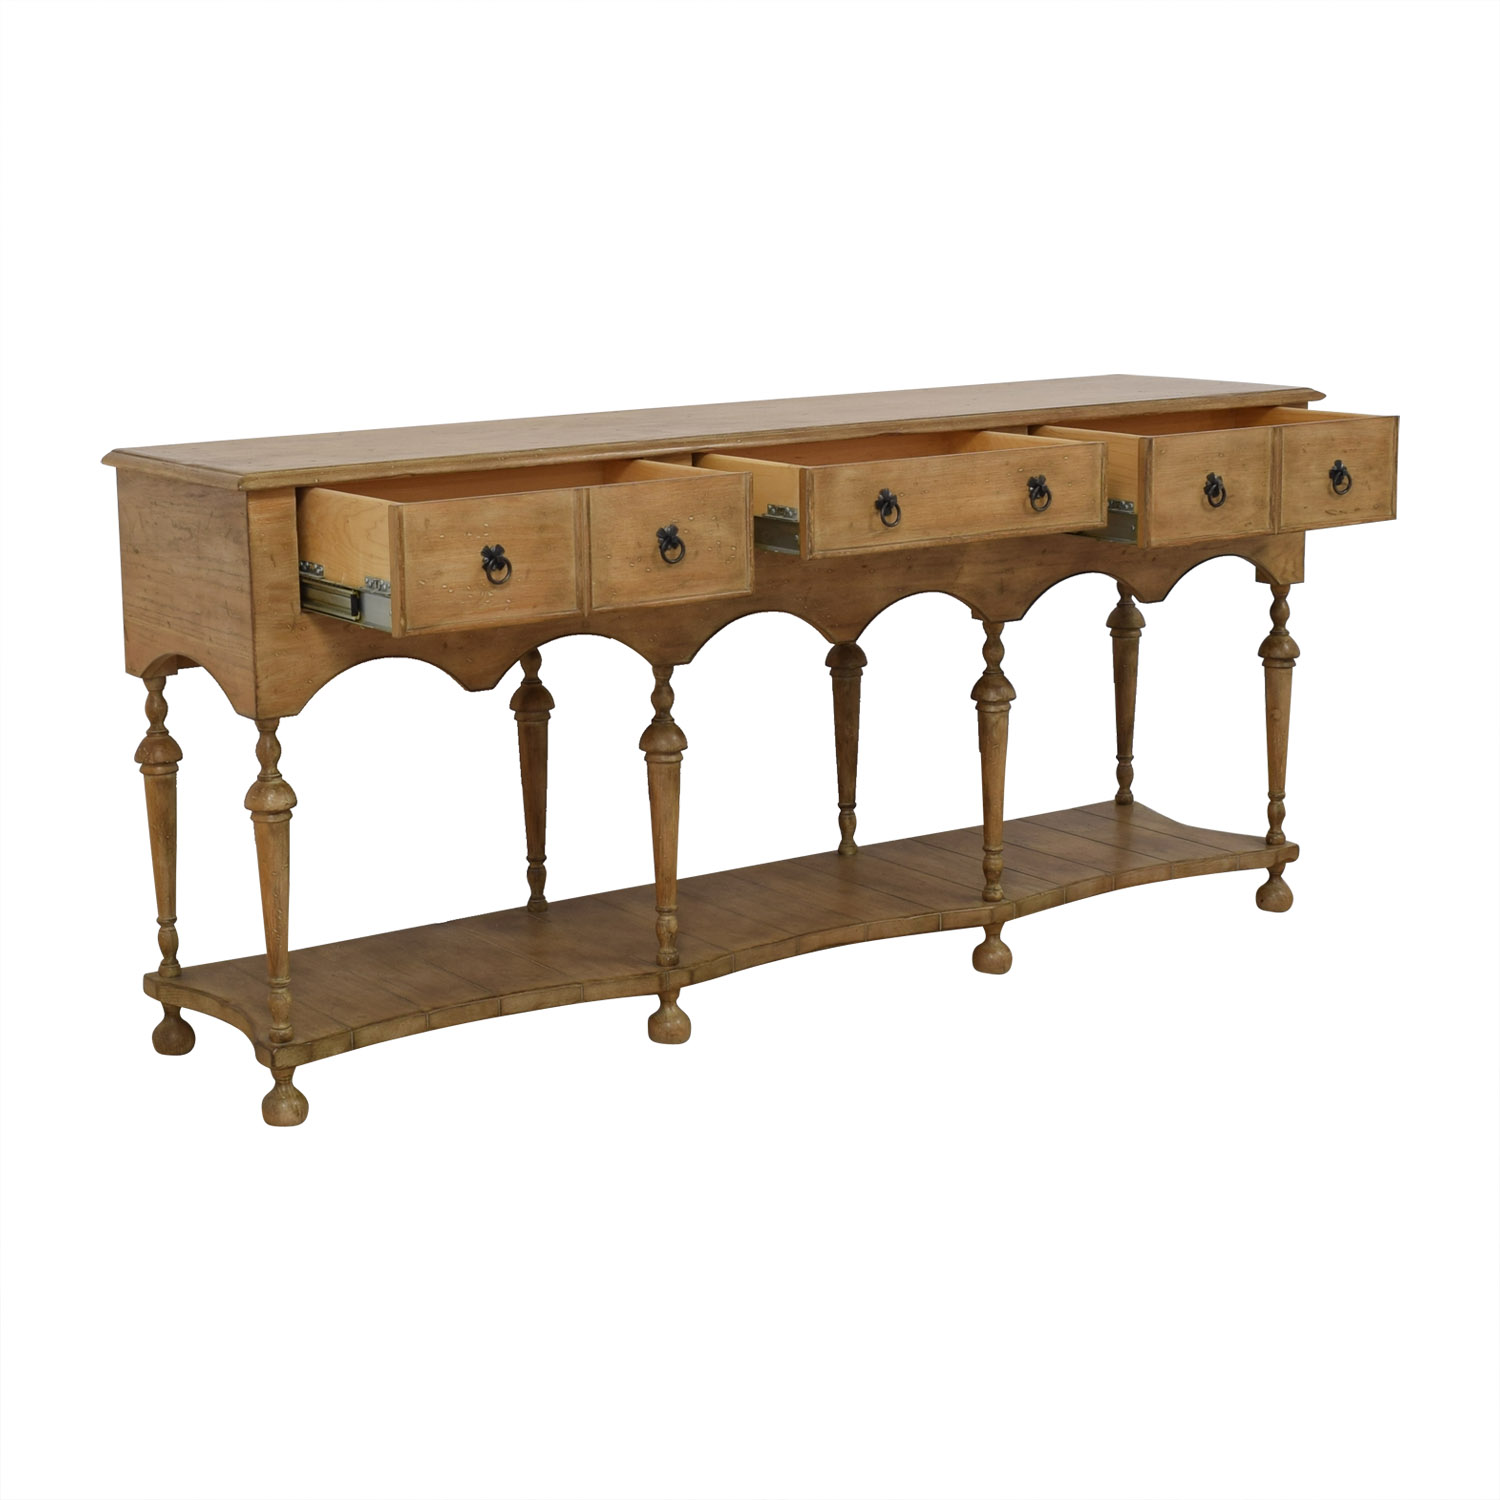 Keller Williams Furniture Keller WIlliams Furniture Solid Oak Buffet on sale